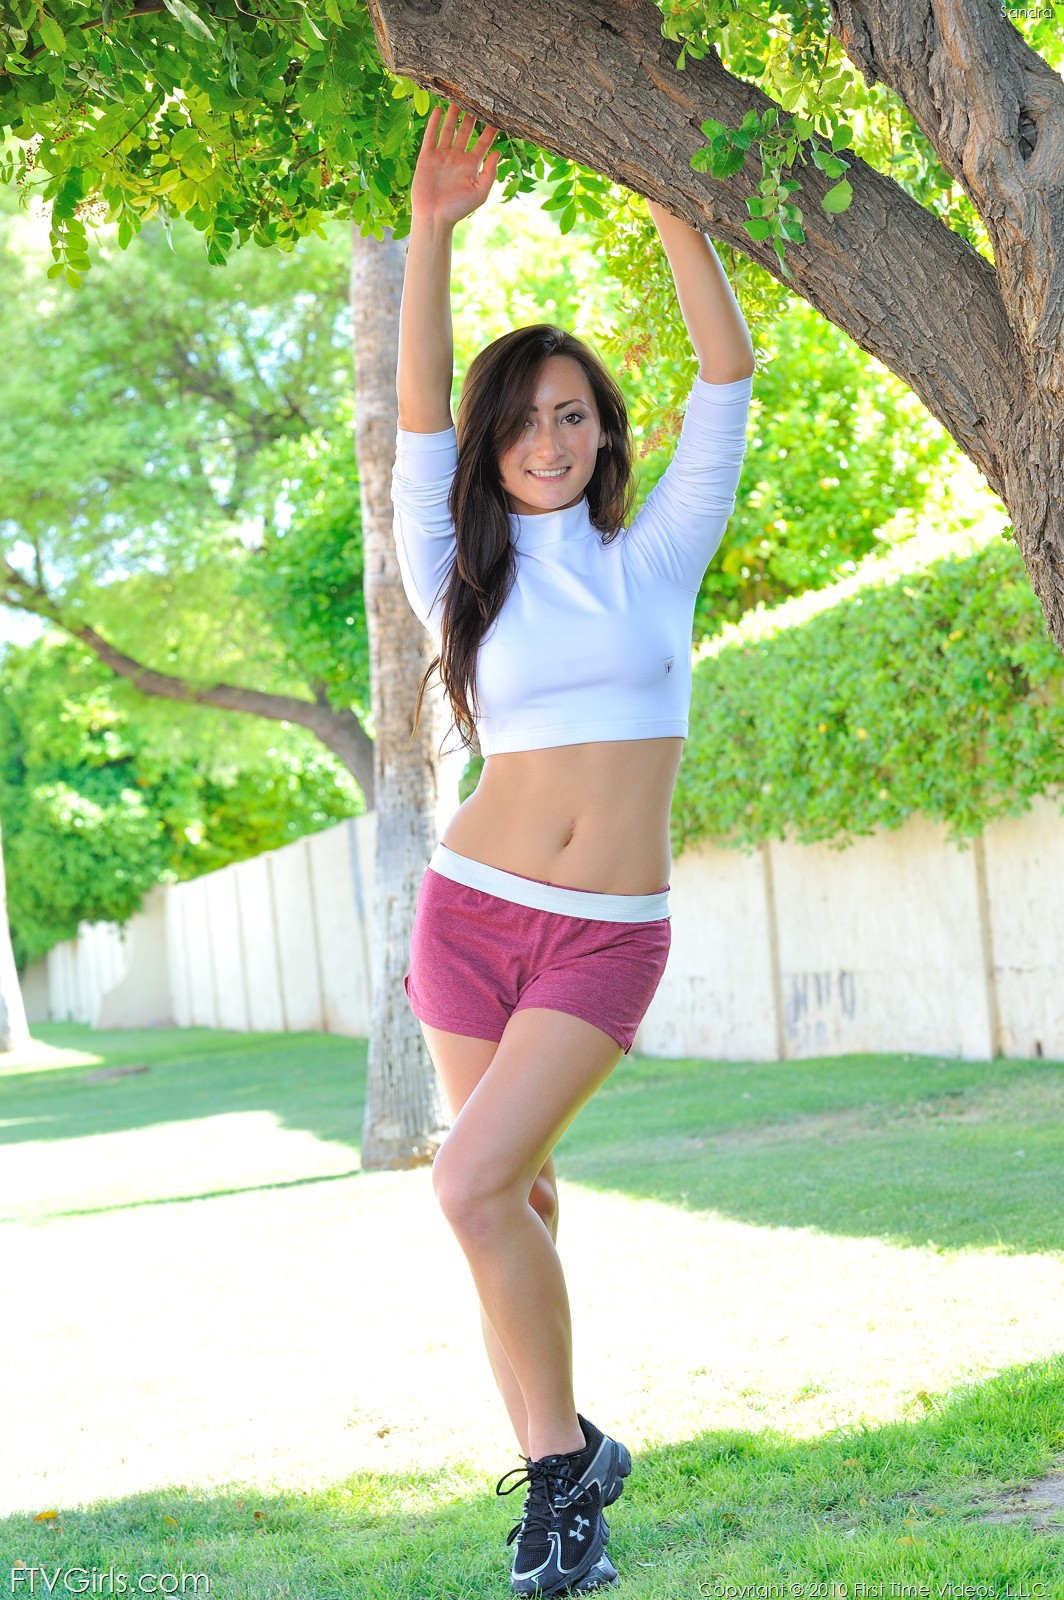 Naked coed sports video